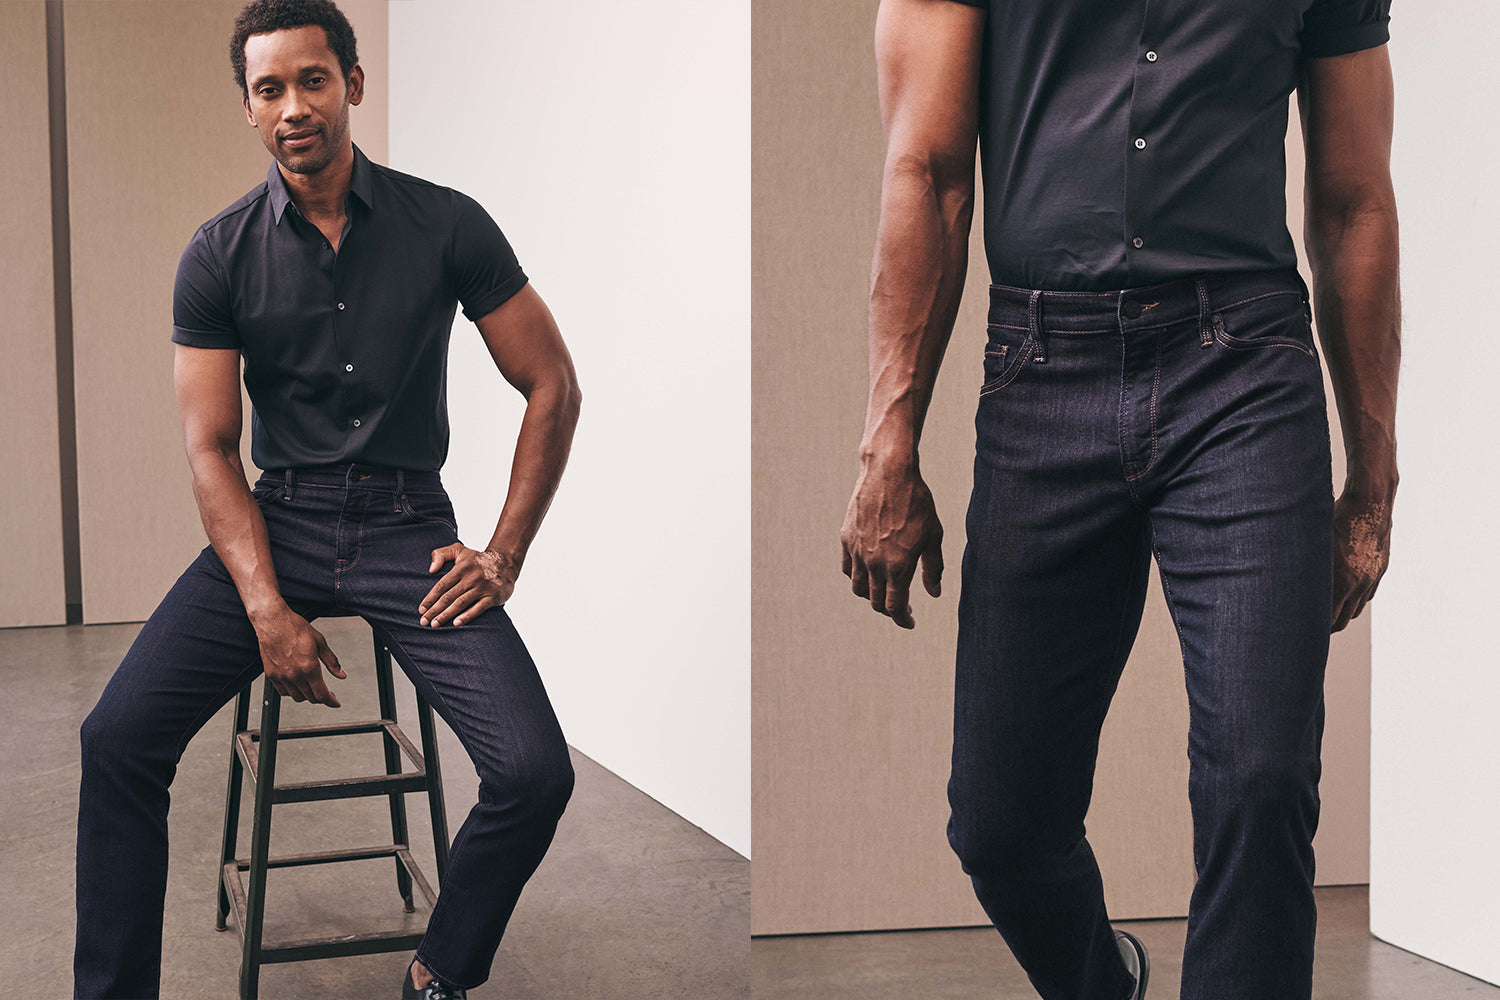 Charisma High Rise jeans for men